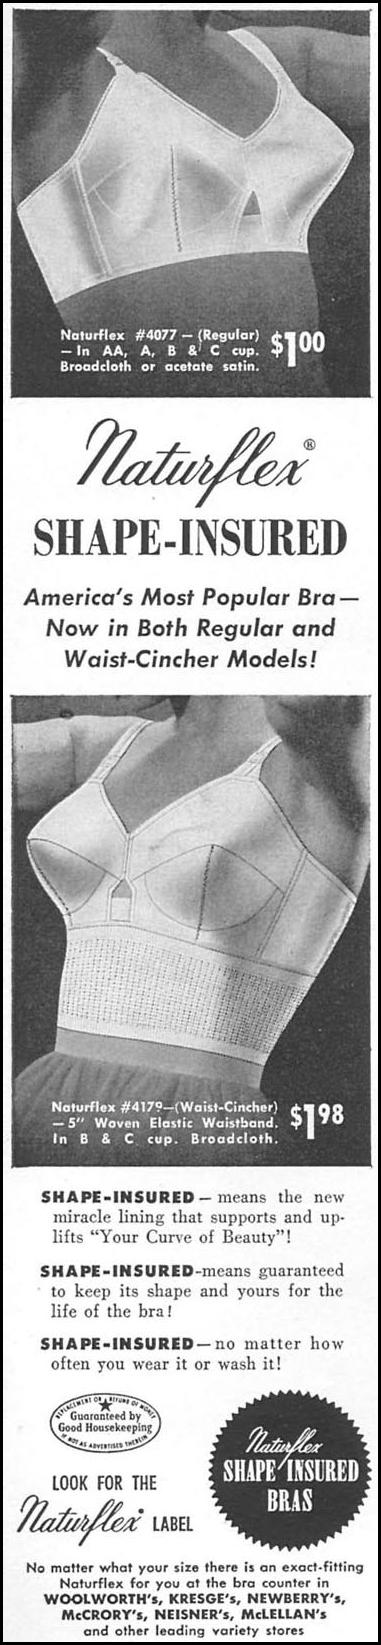 NATURFLEX SHAPE-INSURED BRAS WOMAN'S DAY 02/01/1954 p. 108